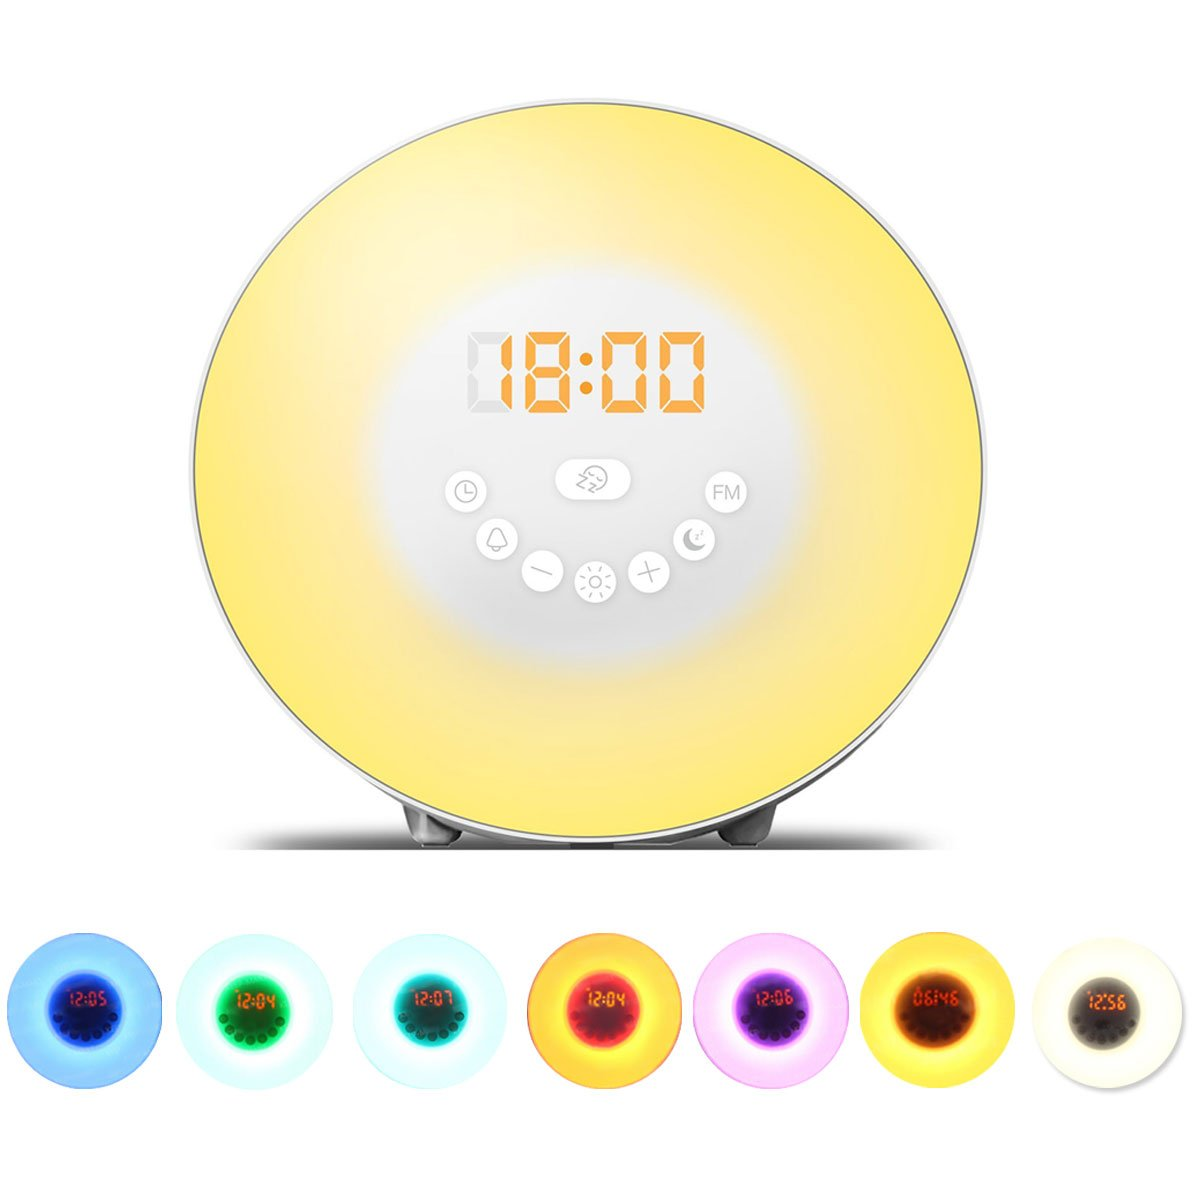 Dragon-Hub Digital Wake up Light Alarm Clock LED 7 Color Night Light Bedside Lamp with FM Radio Snoooze Function Touch Control Sunrise Sunset Simulation Nature Sounds for Heavy Sleepers Adults Kids